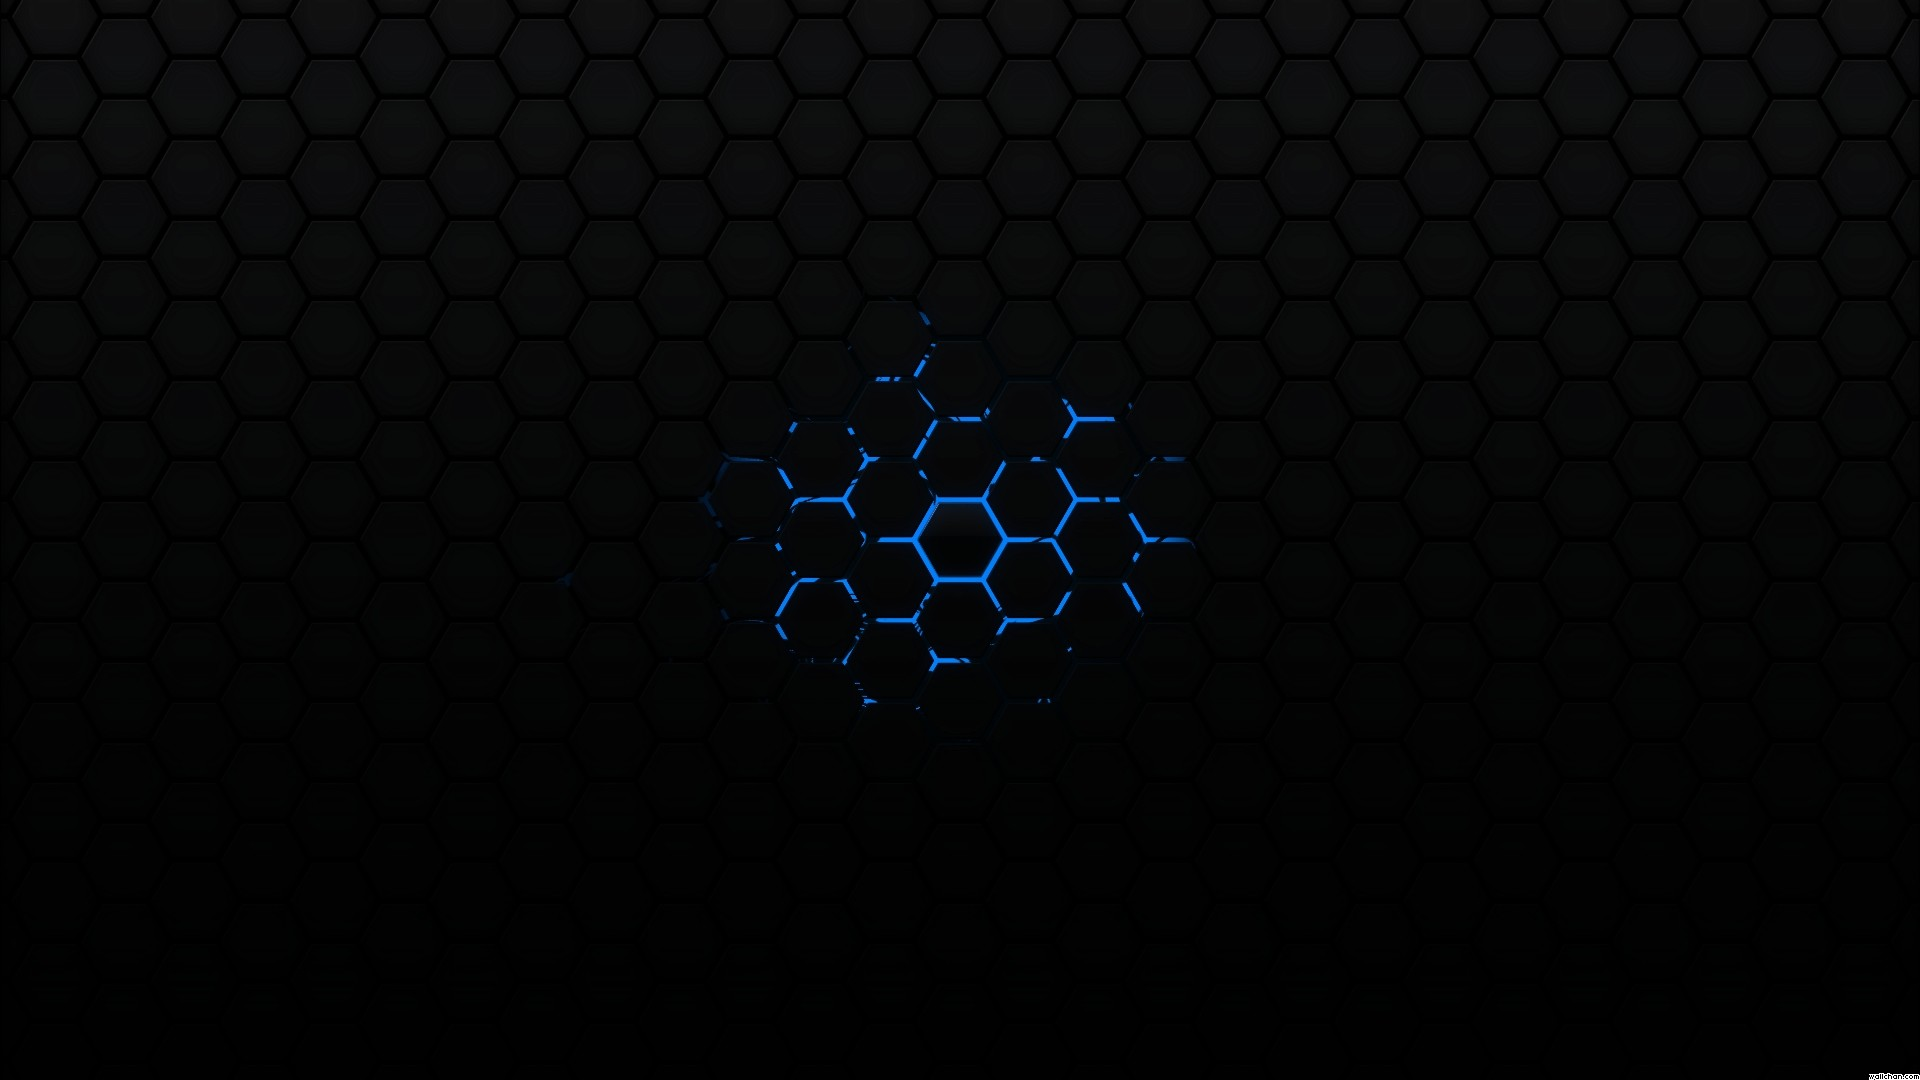 cool black background wallpaper (65+ images)